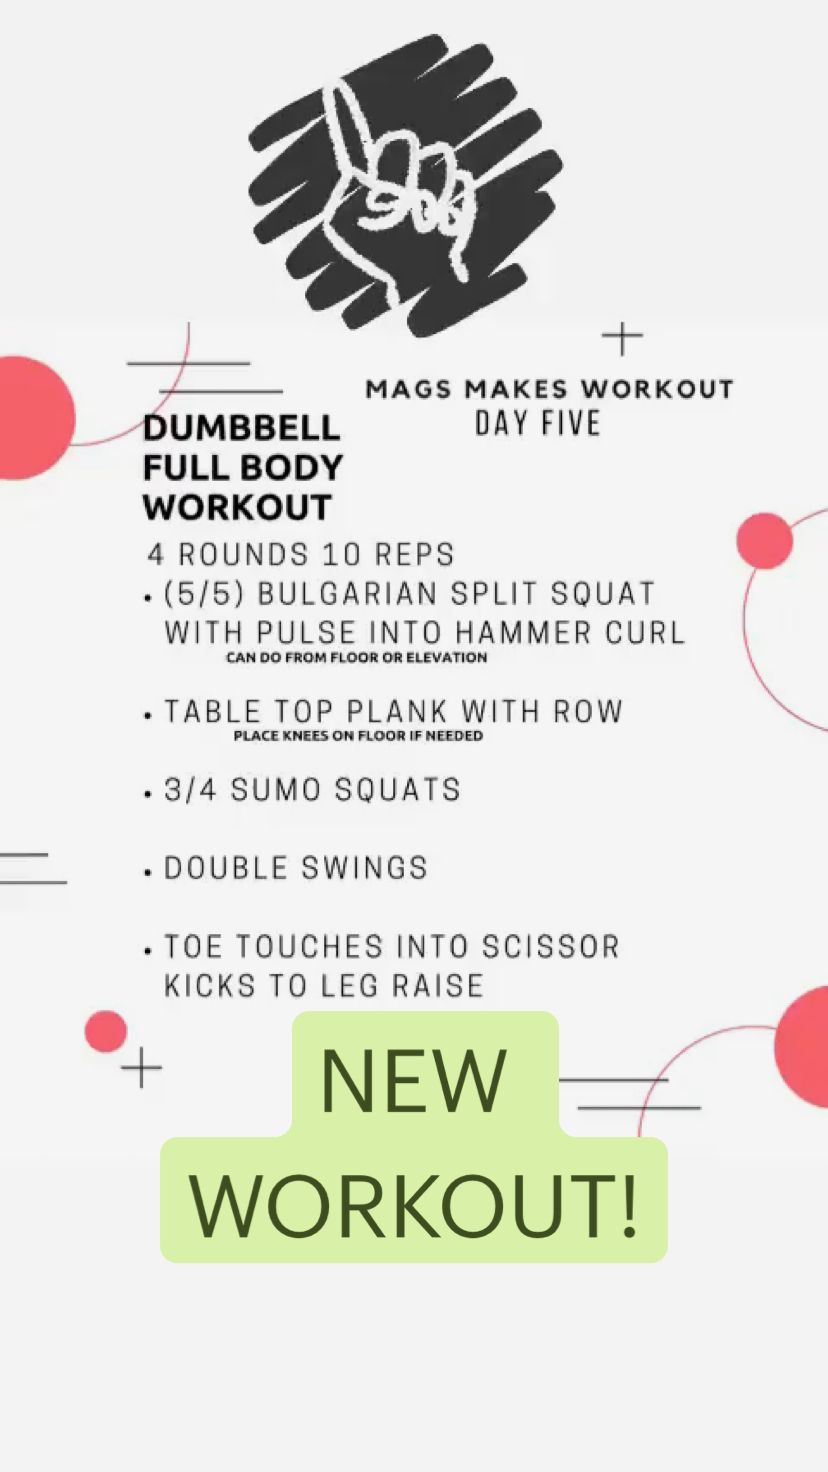 NEW WORKOUT!